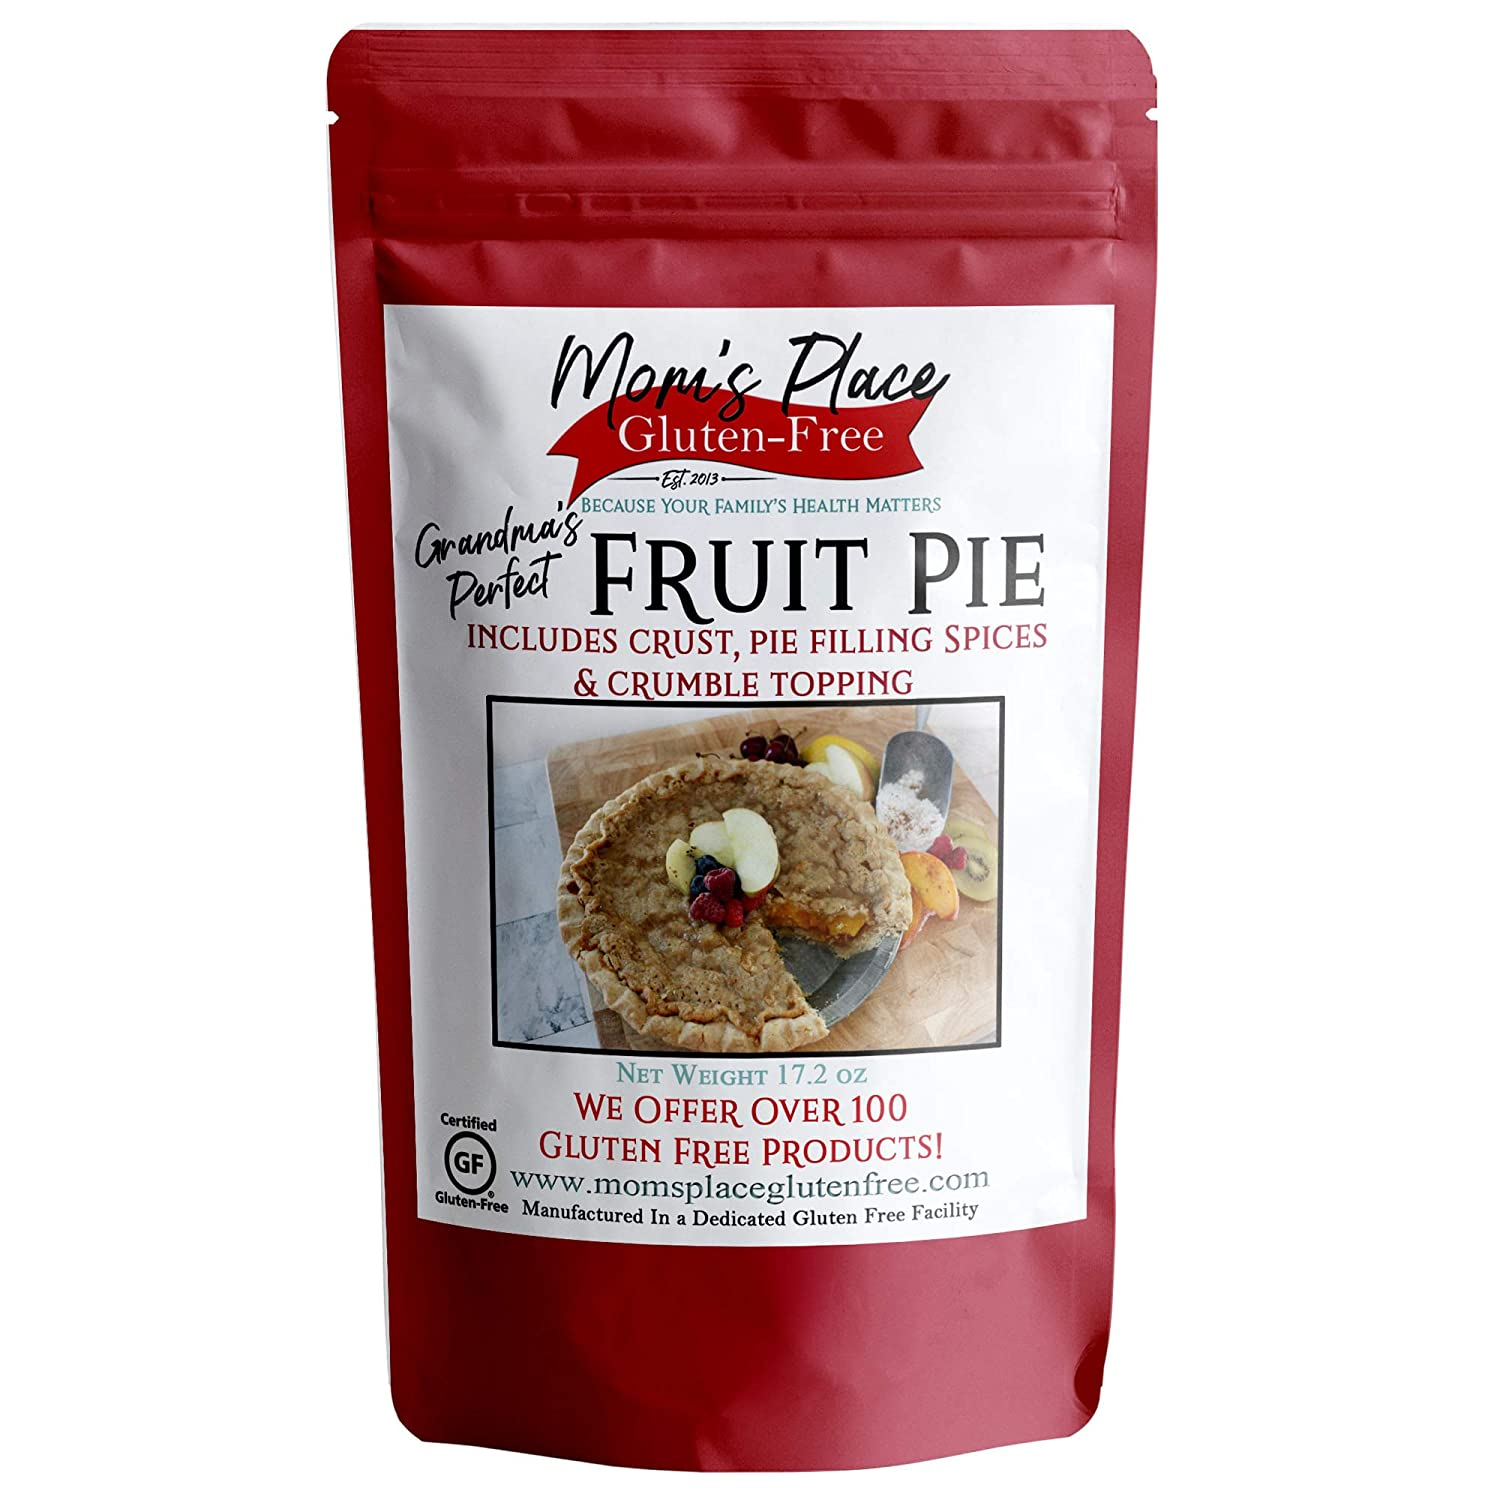 Gluten-Free Fruit Pie with Crumble Topping